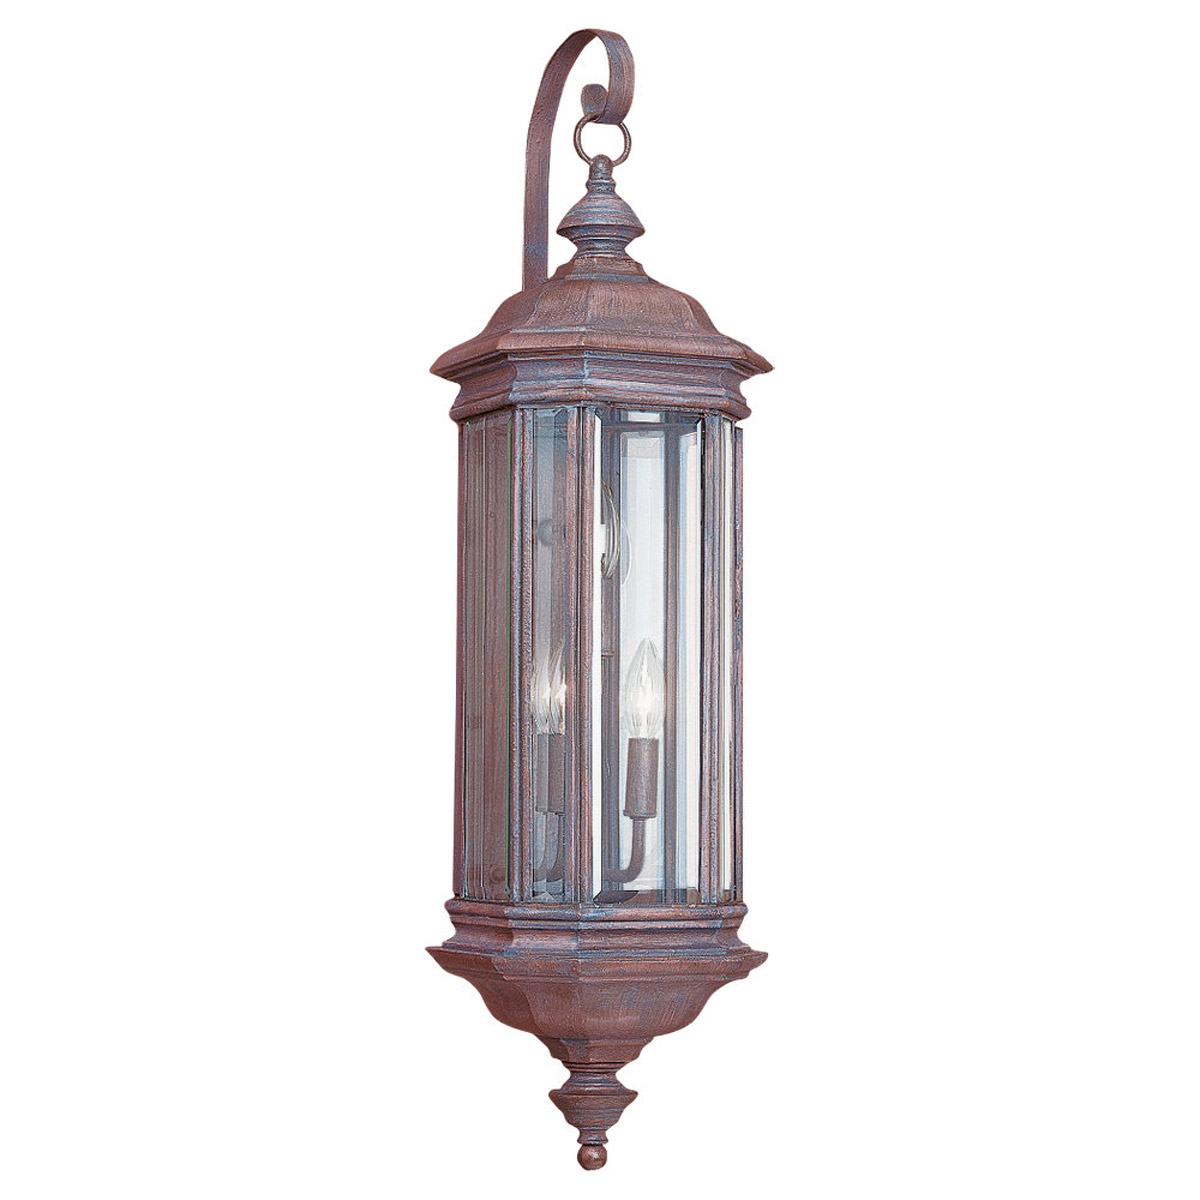 Sea Gull Lighting Hill Gate 3 Light Outdoor Wall Lantern in Textured Rust Patina 8842-08